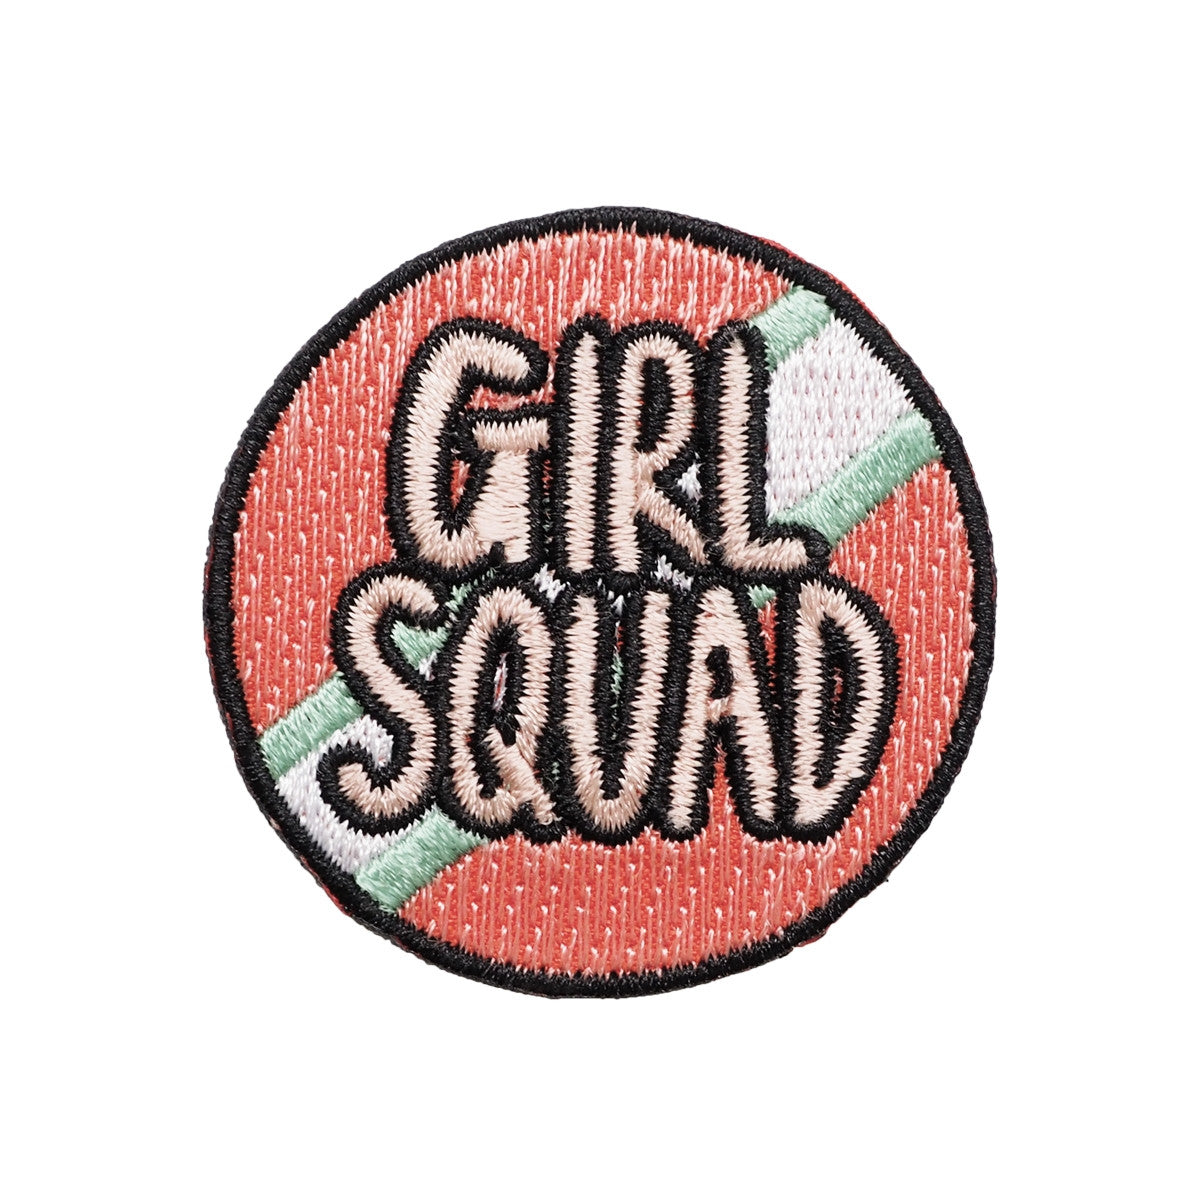 THE PAPER BUNNY-Girl Squad Sticker Patch